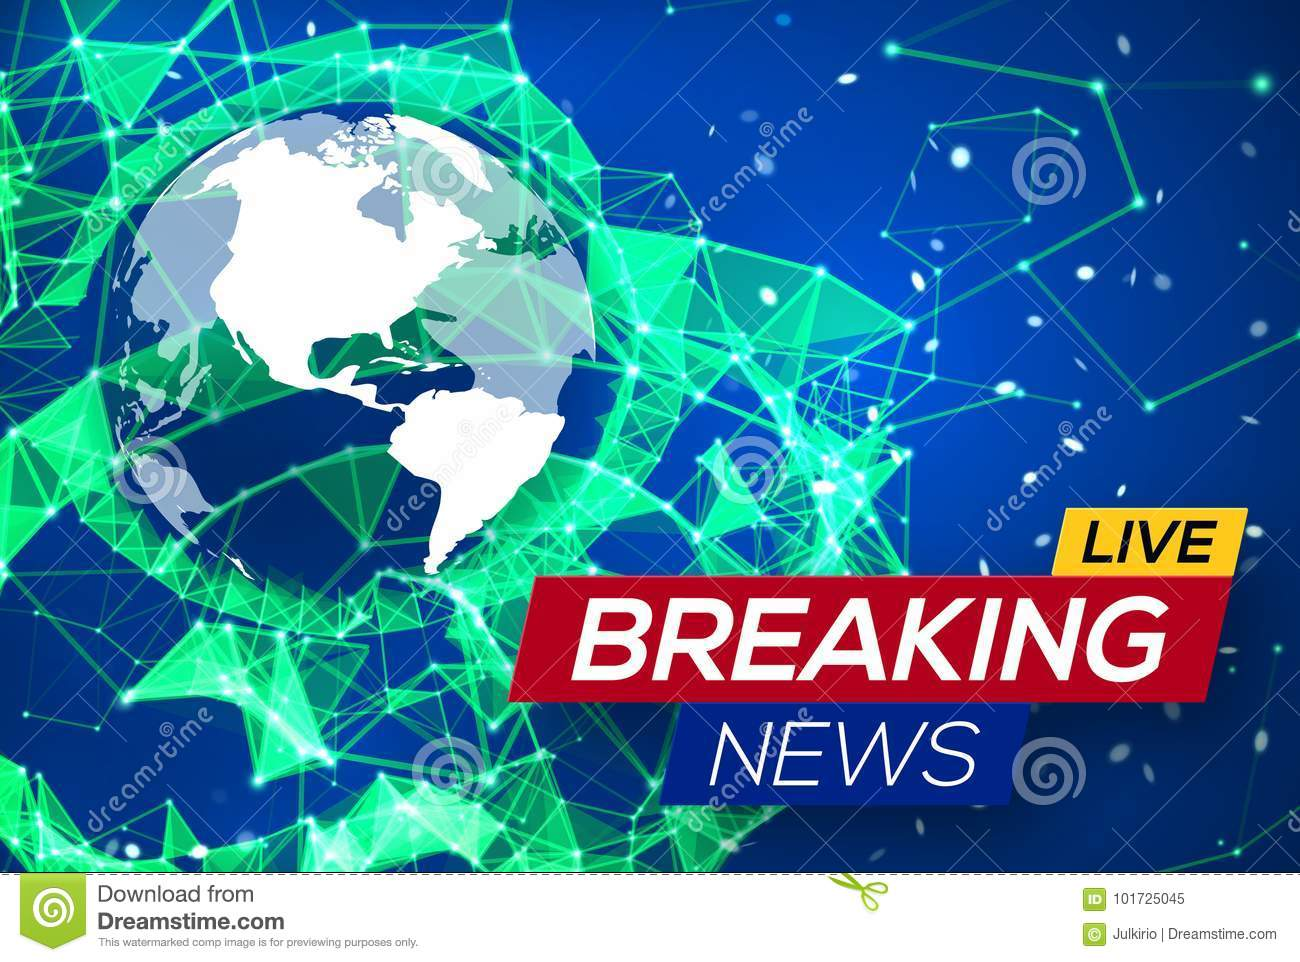 Breaking news live with world map on blue backdrop stock vector download comp gumiabroncs Choice Image